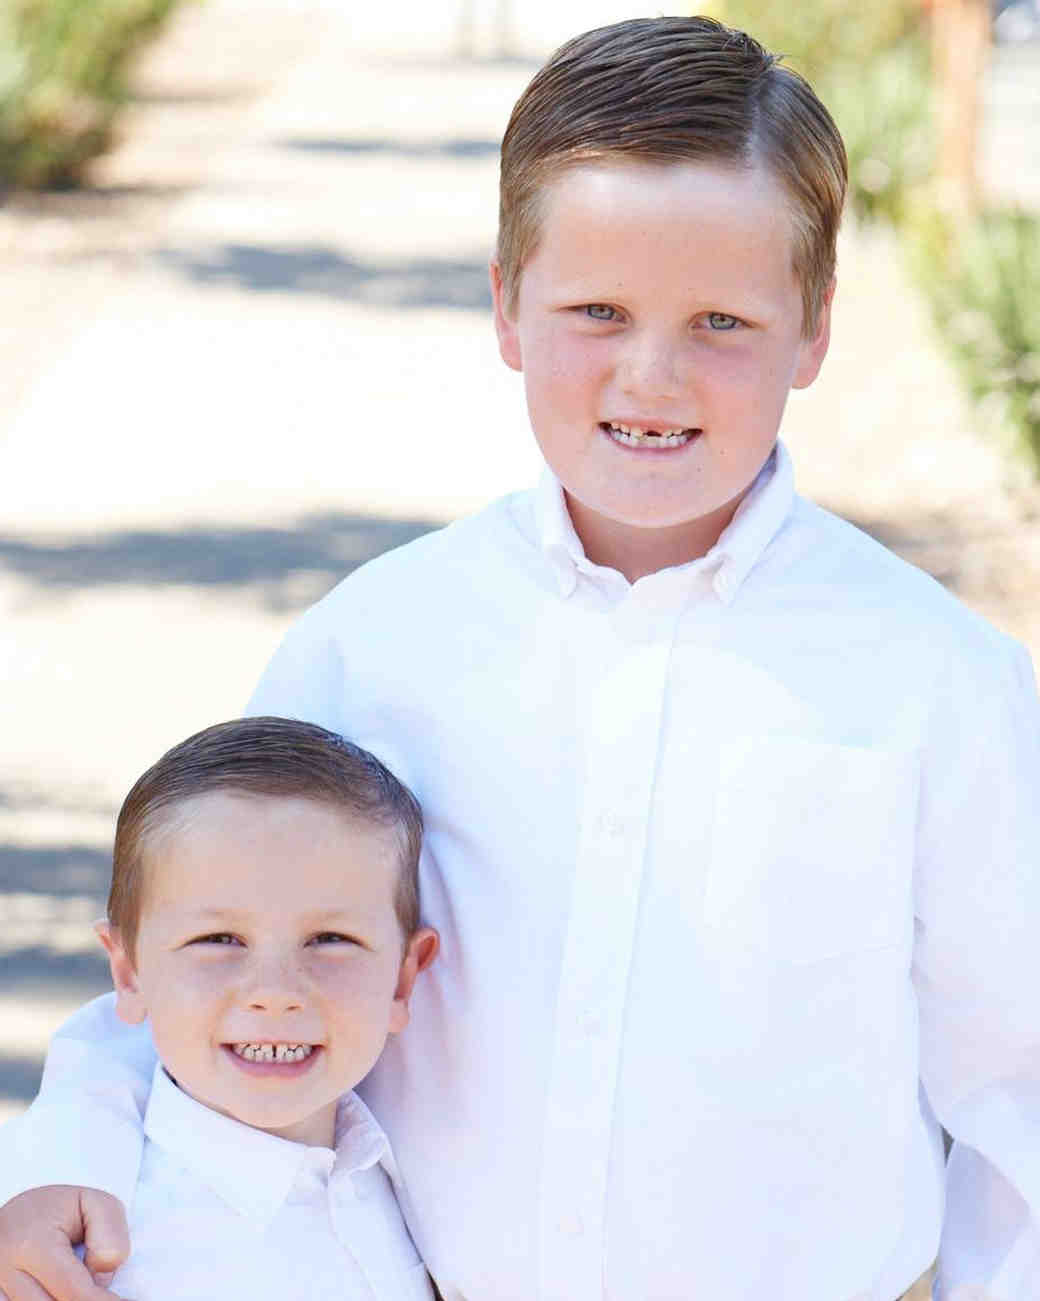 sarah-scott-wedding-boys-0414vert.jpg